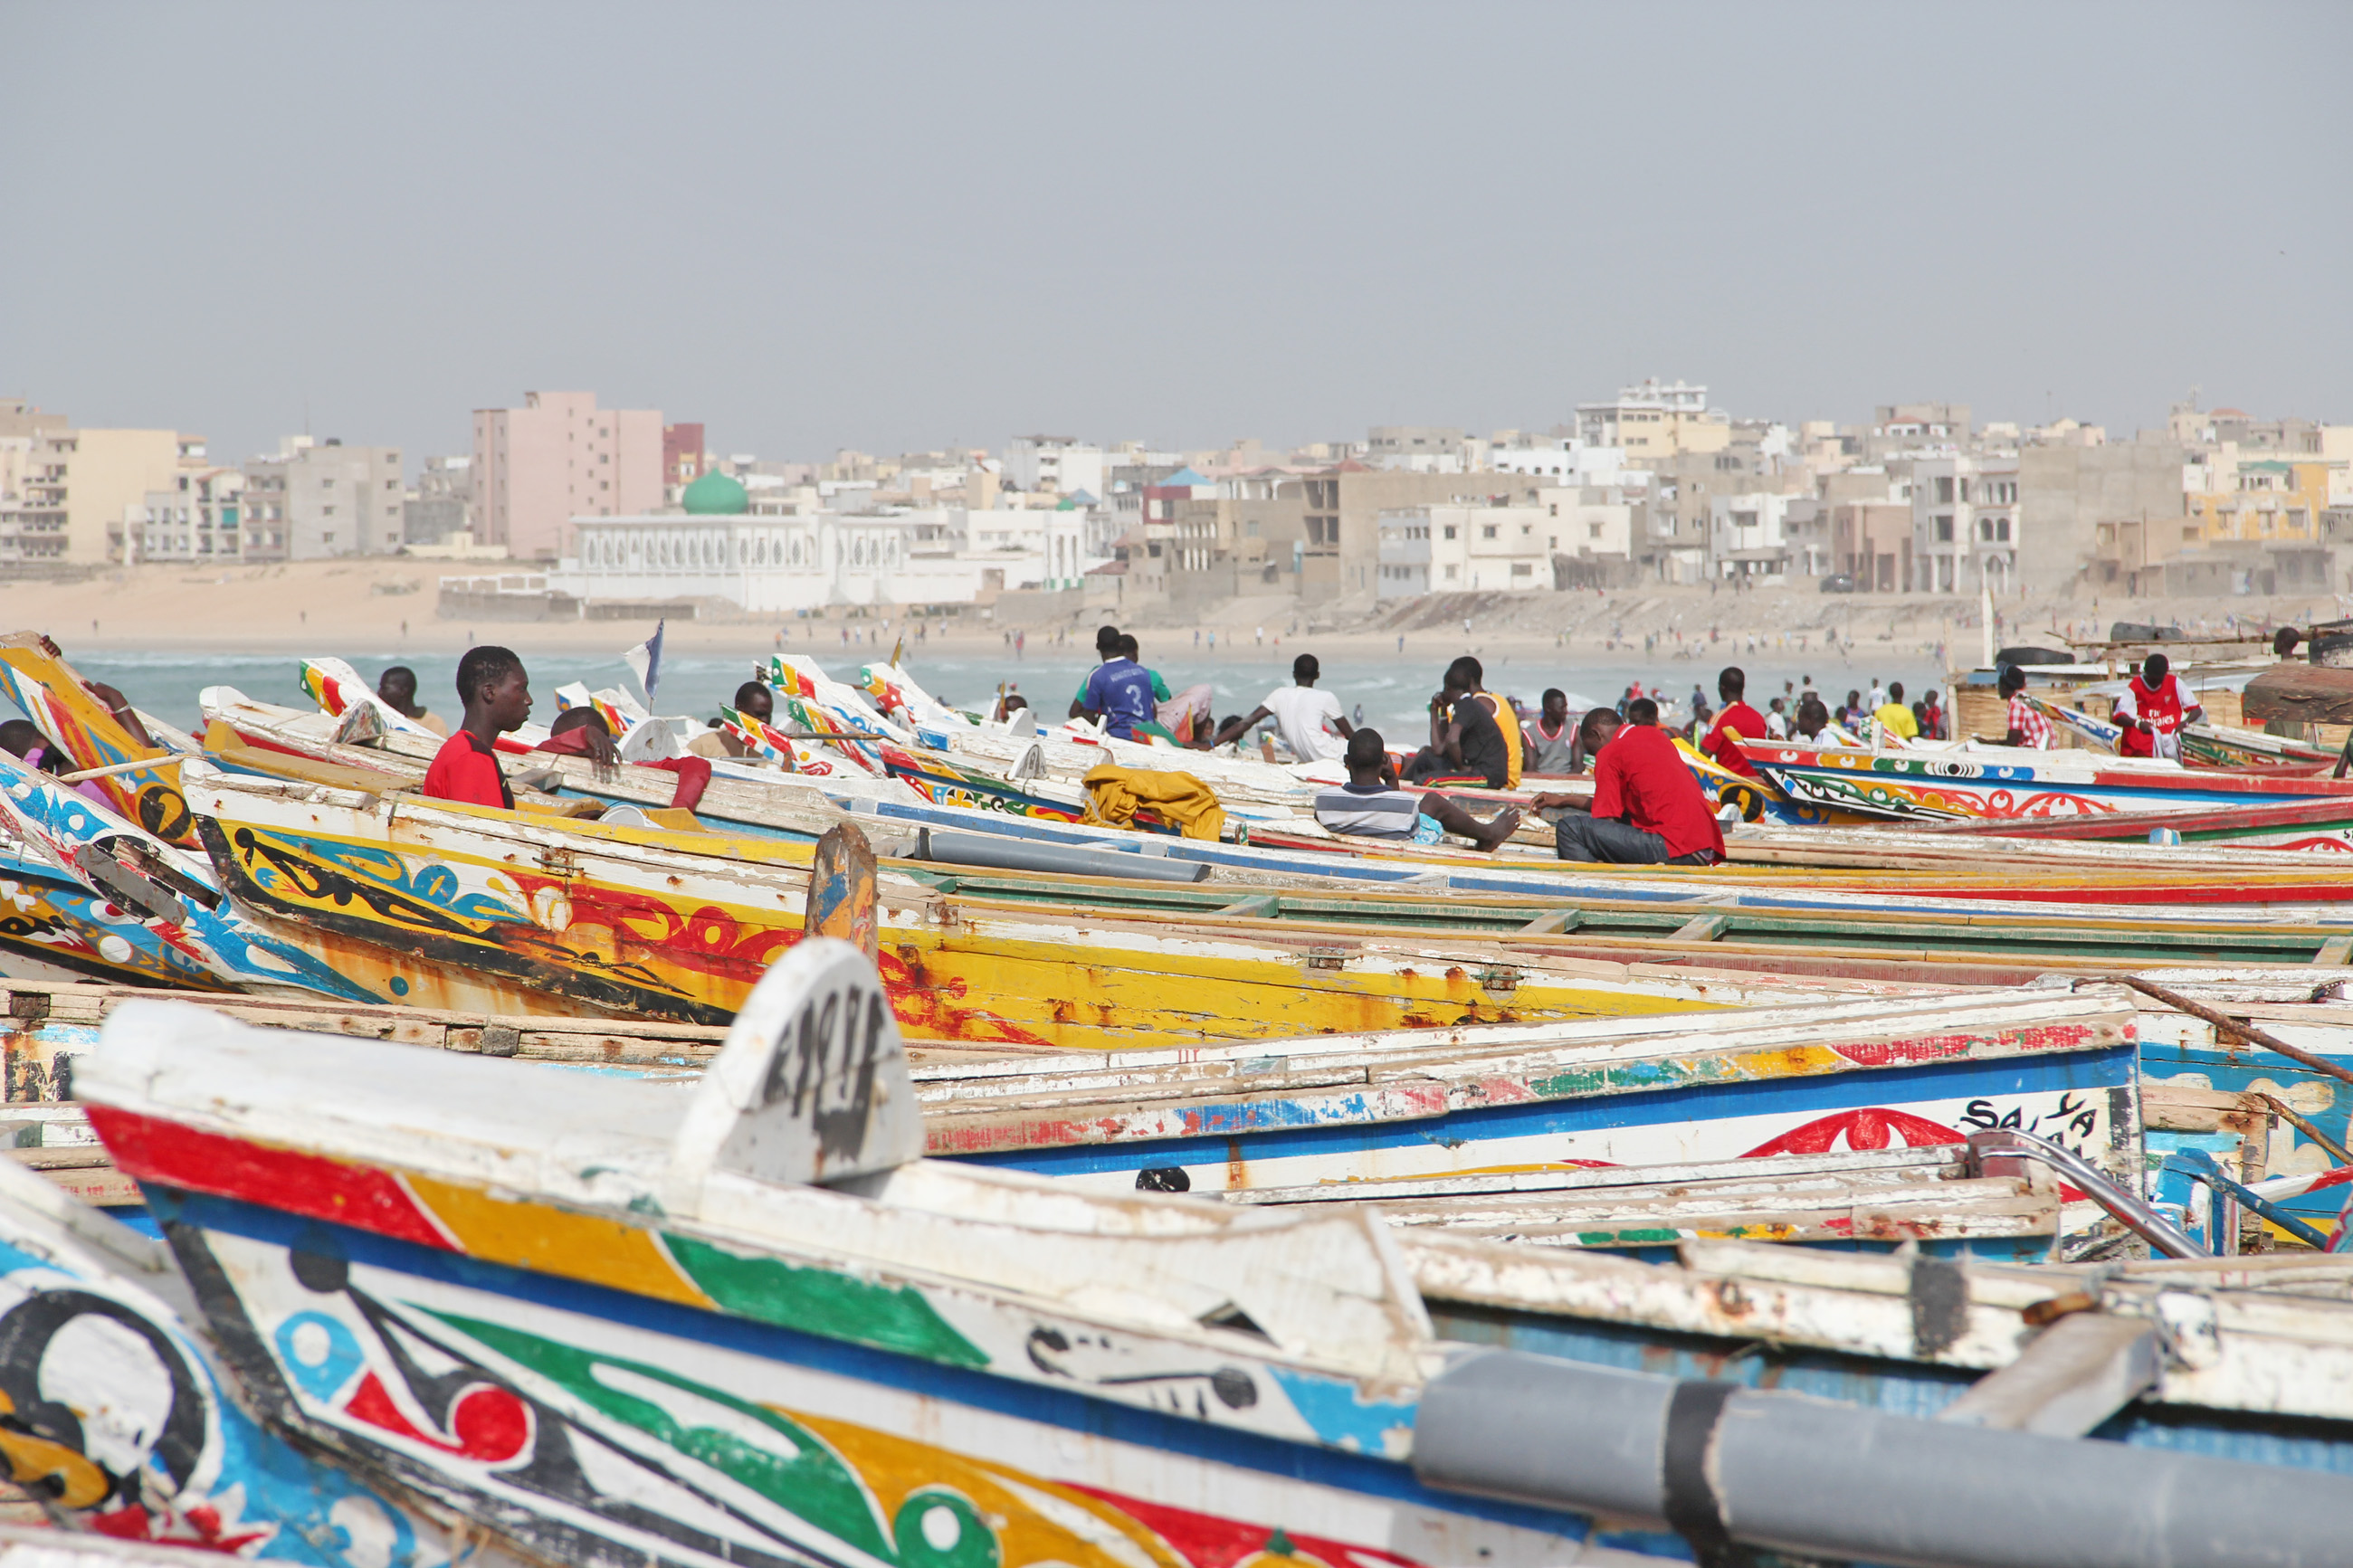 Artisanal boats moored on a beach in Dakar, Senegal. The UN Food and Agriculture Organisation estimates that there were around 16,000 small fishing boats in Senegal in2011, from just about 5,000 in 1982. Local fishermen have also been blamed for overfishi